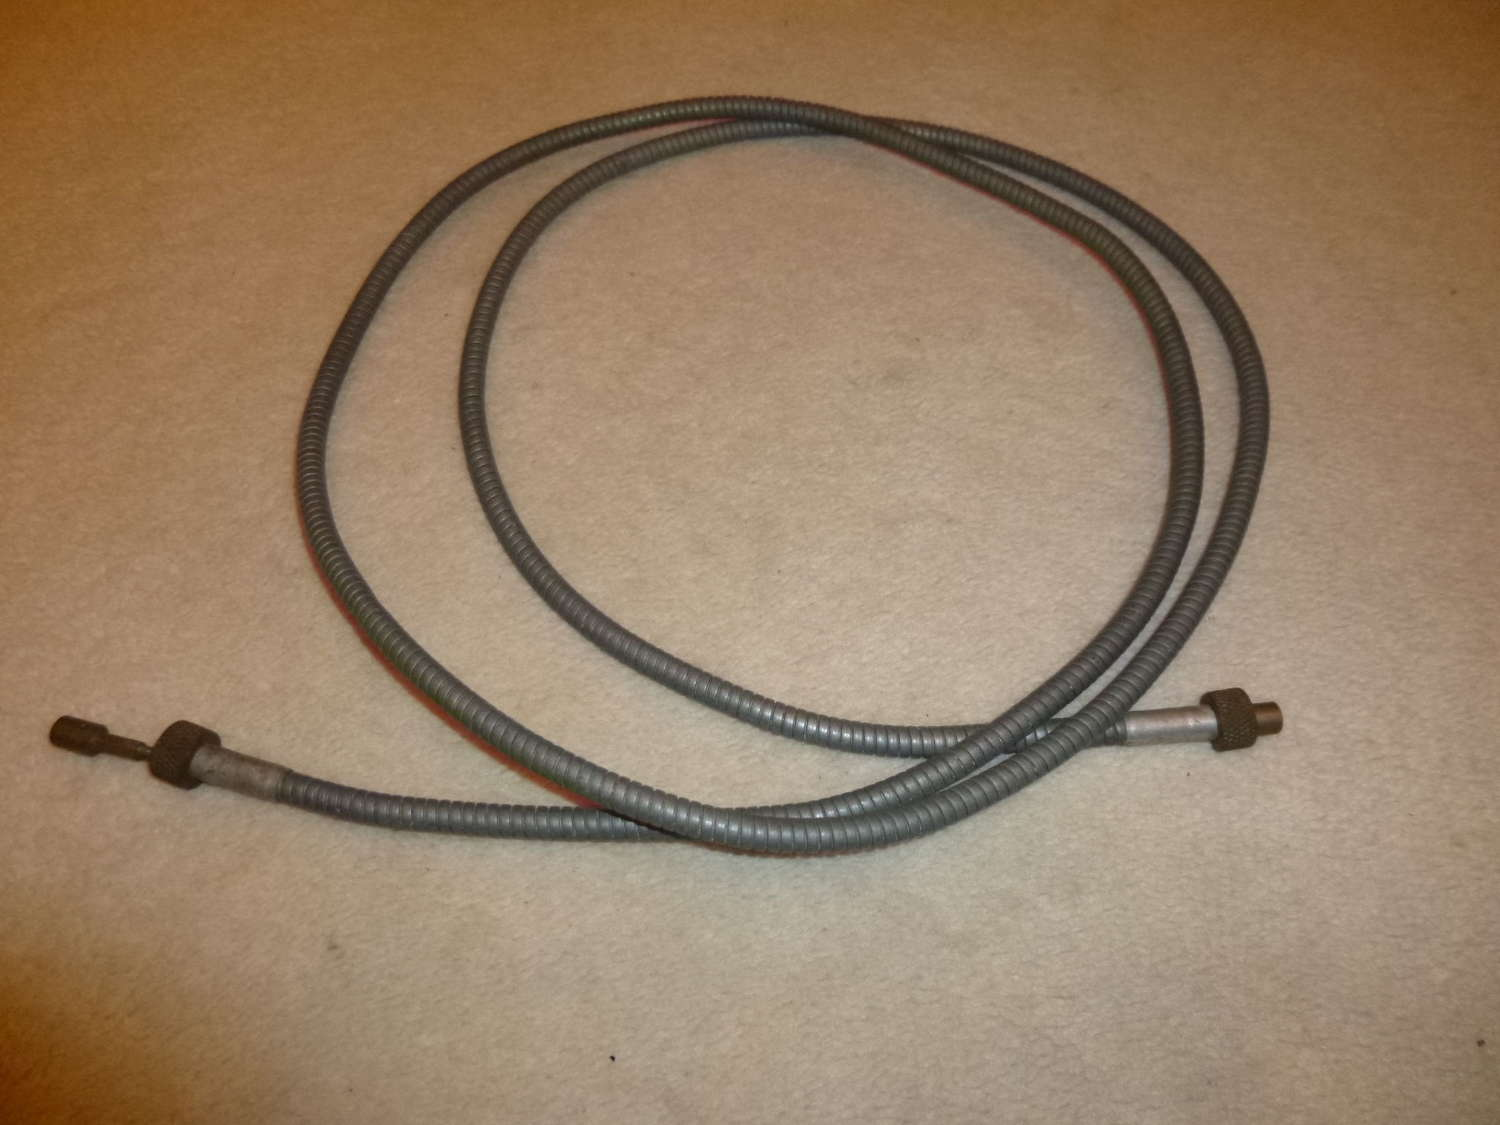 US Air Force command set drive cable 2 meters